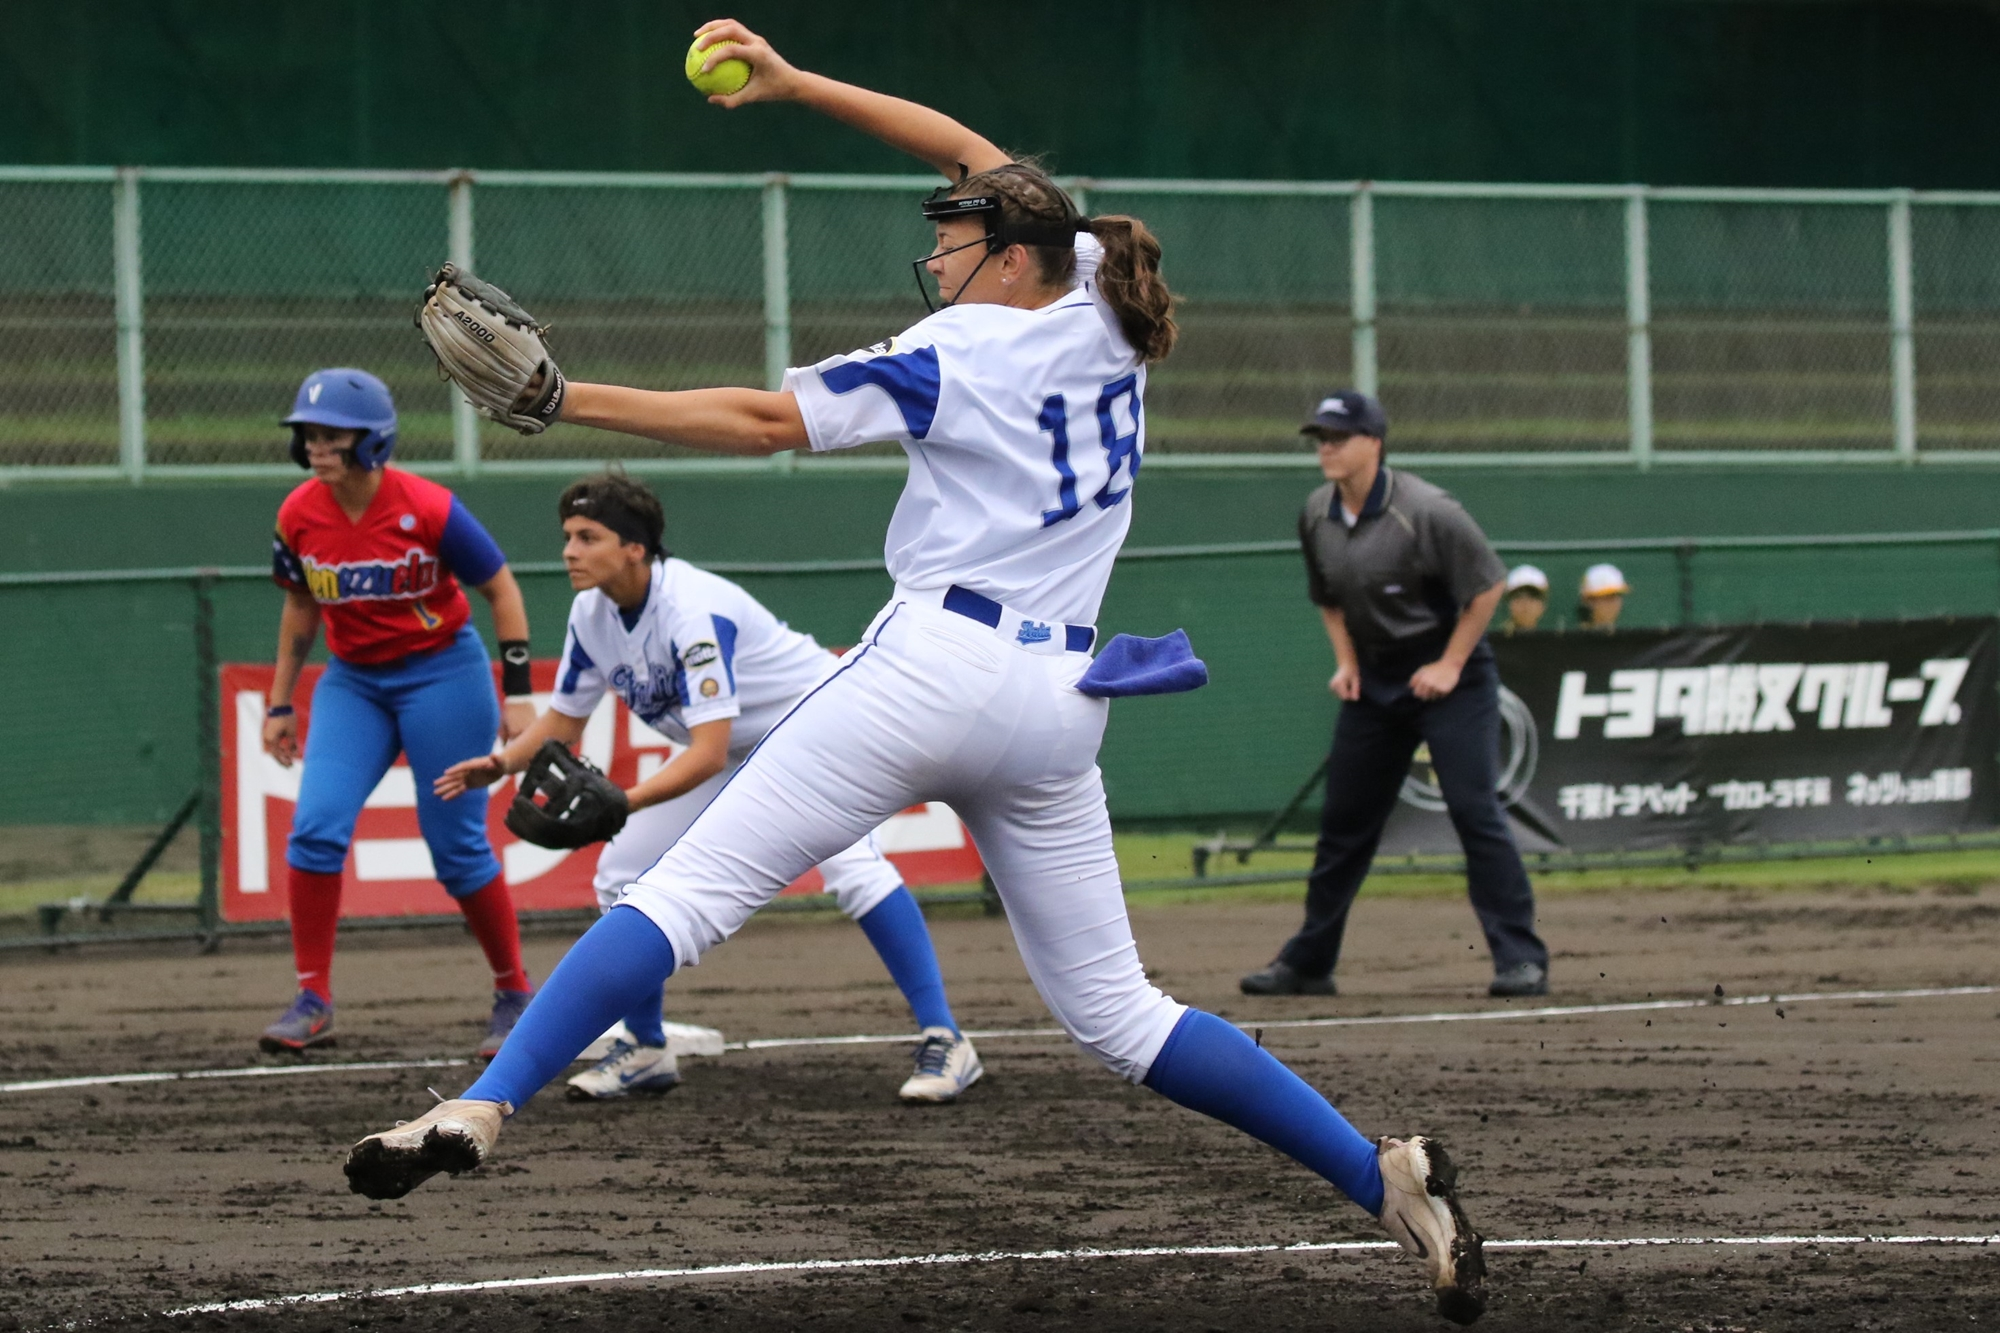 Greta Checchetti pitched a gem for Italy against Venezuela